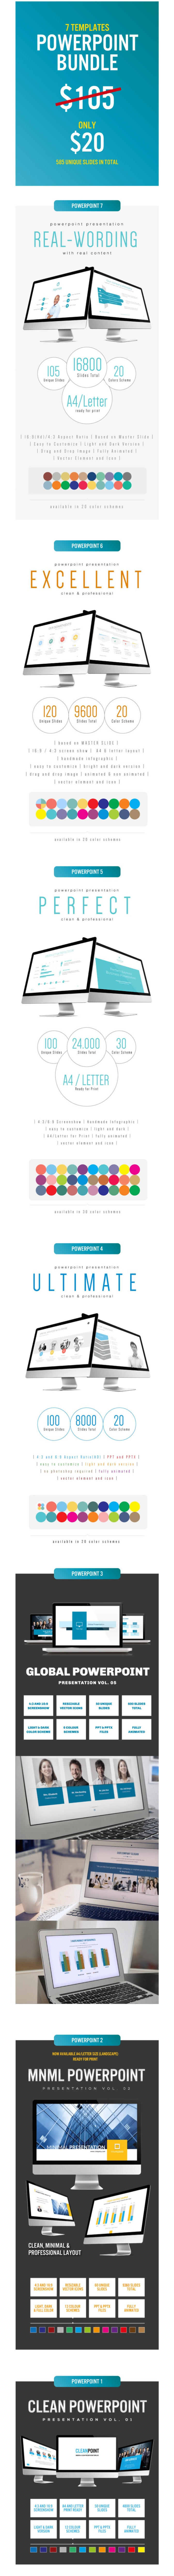 graphicriver_powerpoint_mega_bundle_templates_12329068